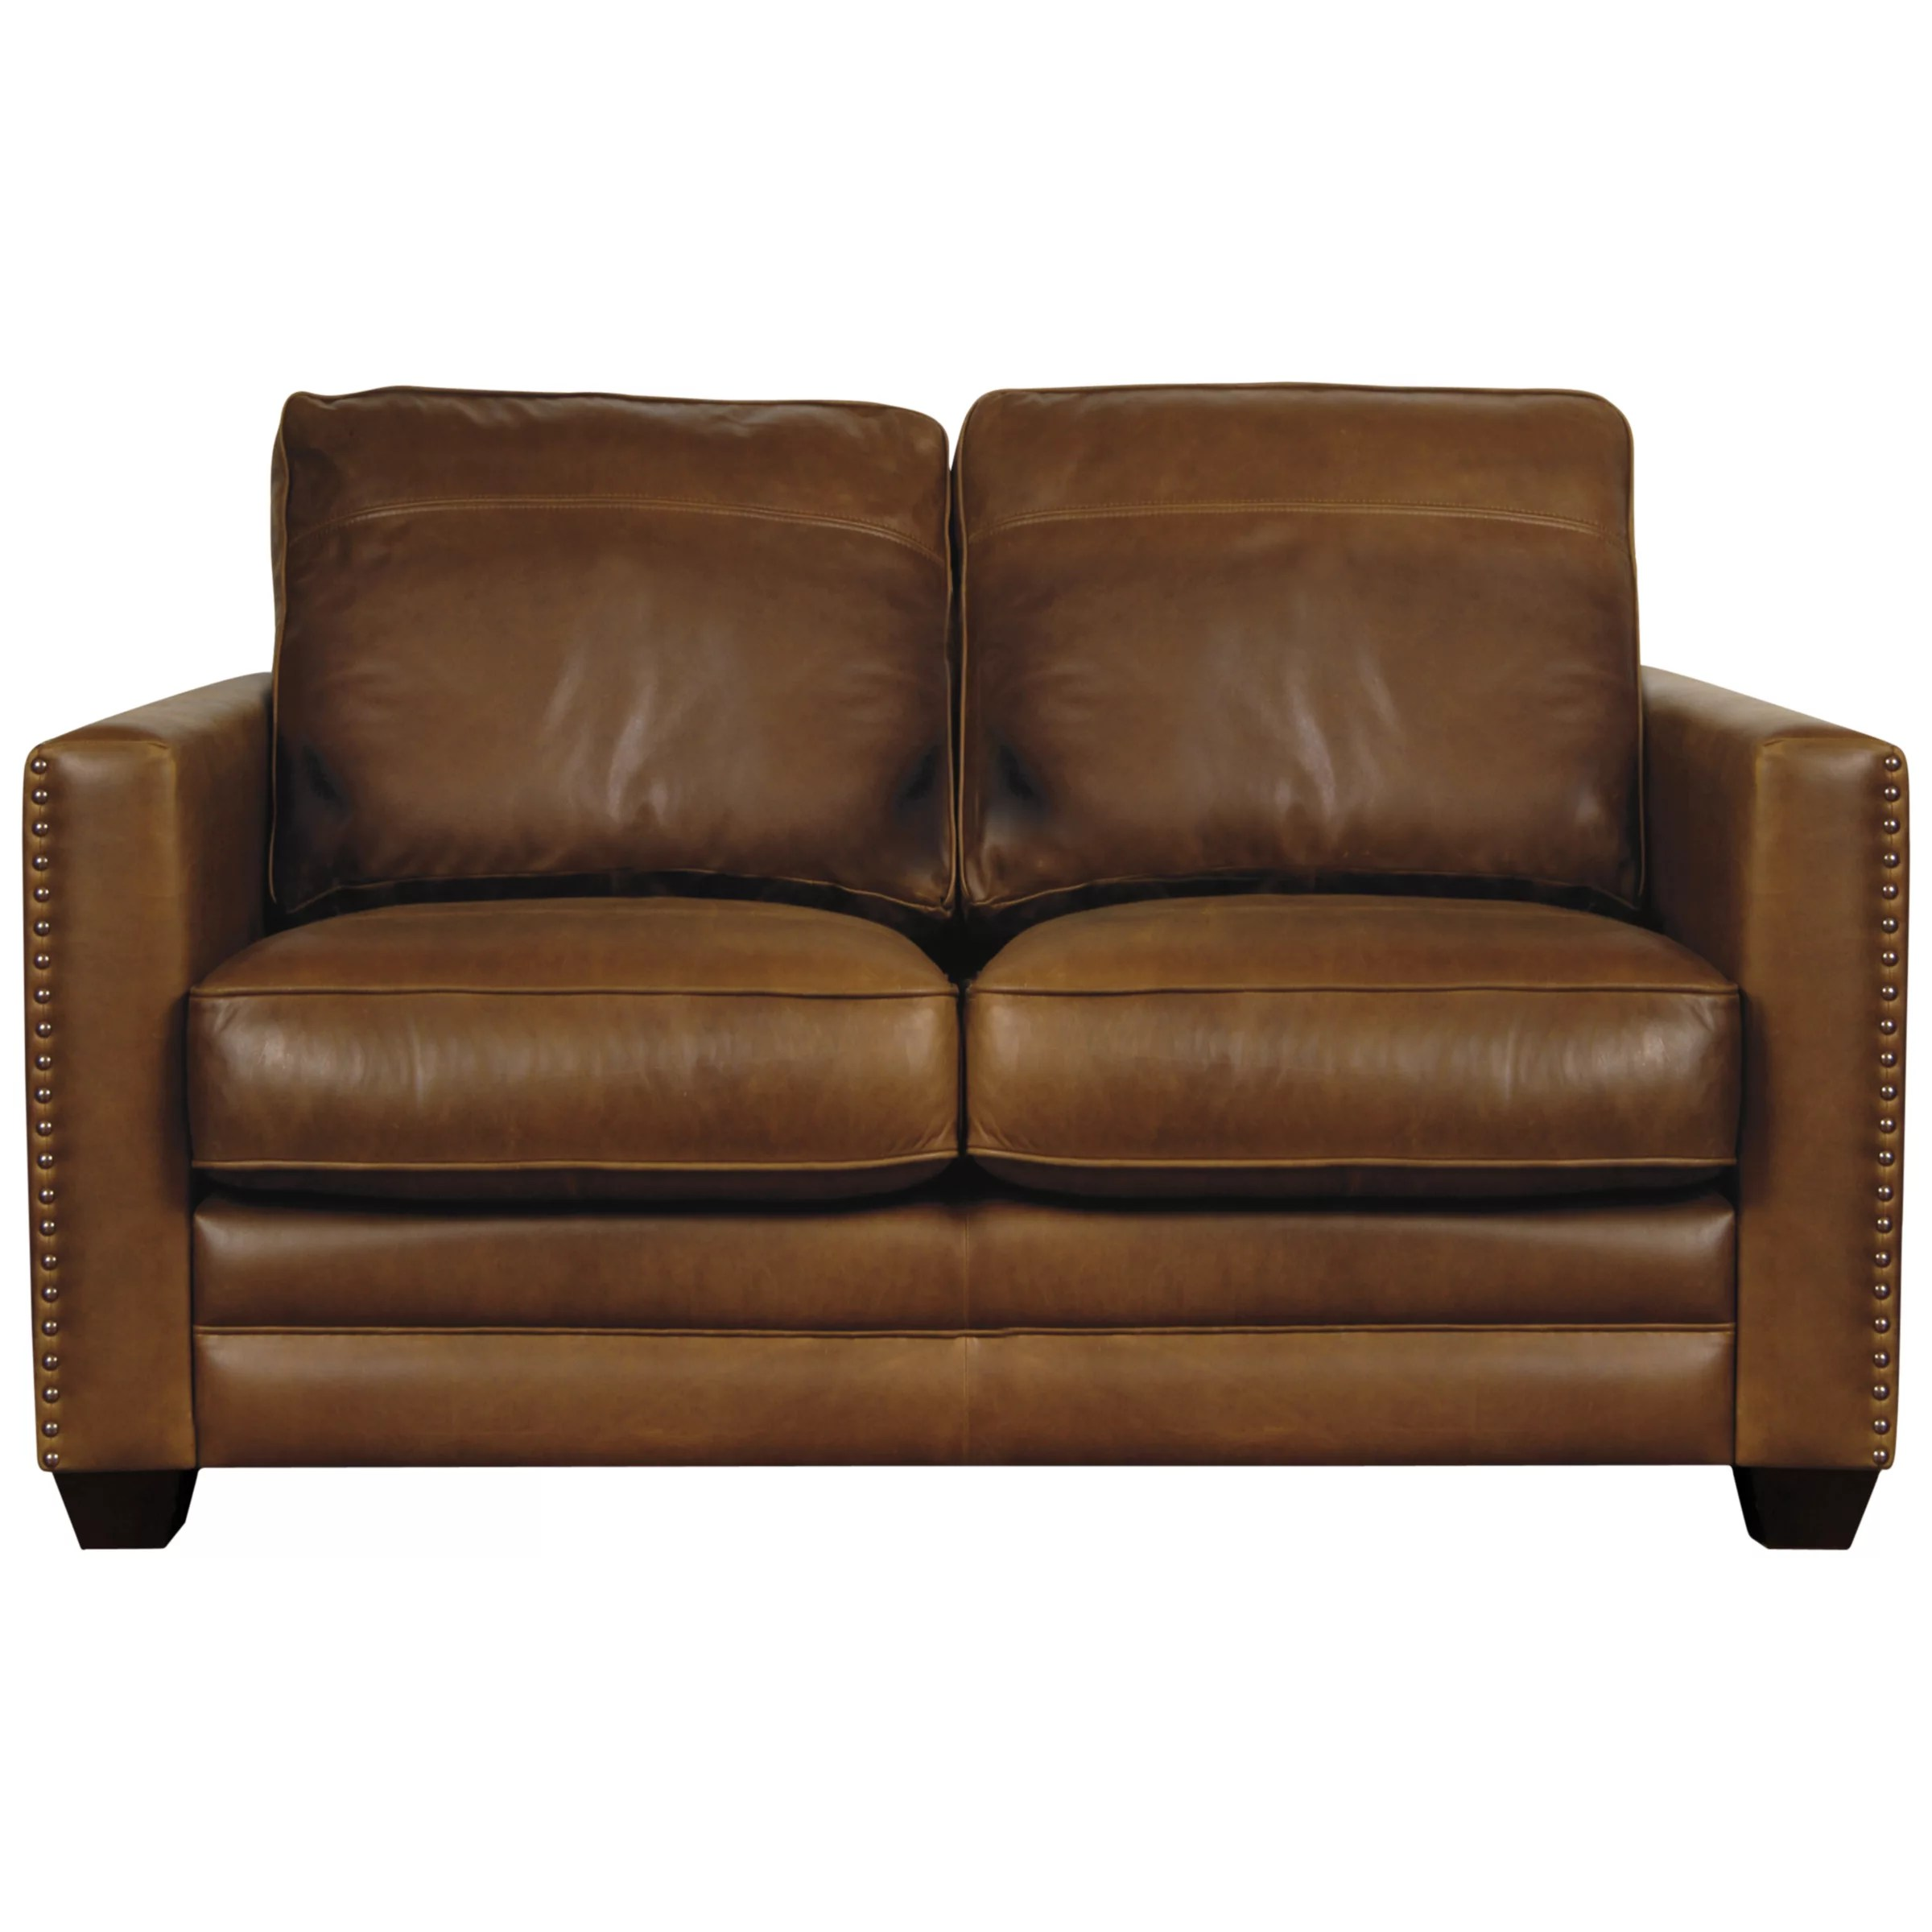 sofa comparison ashley furniture twin beds buy cheap john lewis compare sofas prices for best